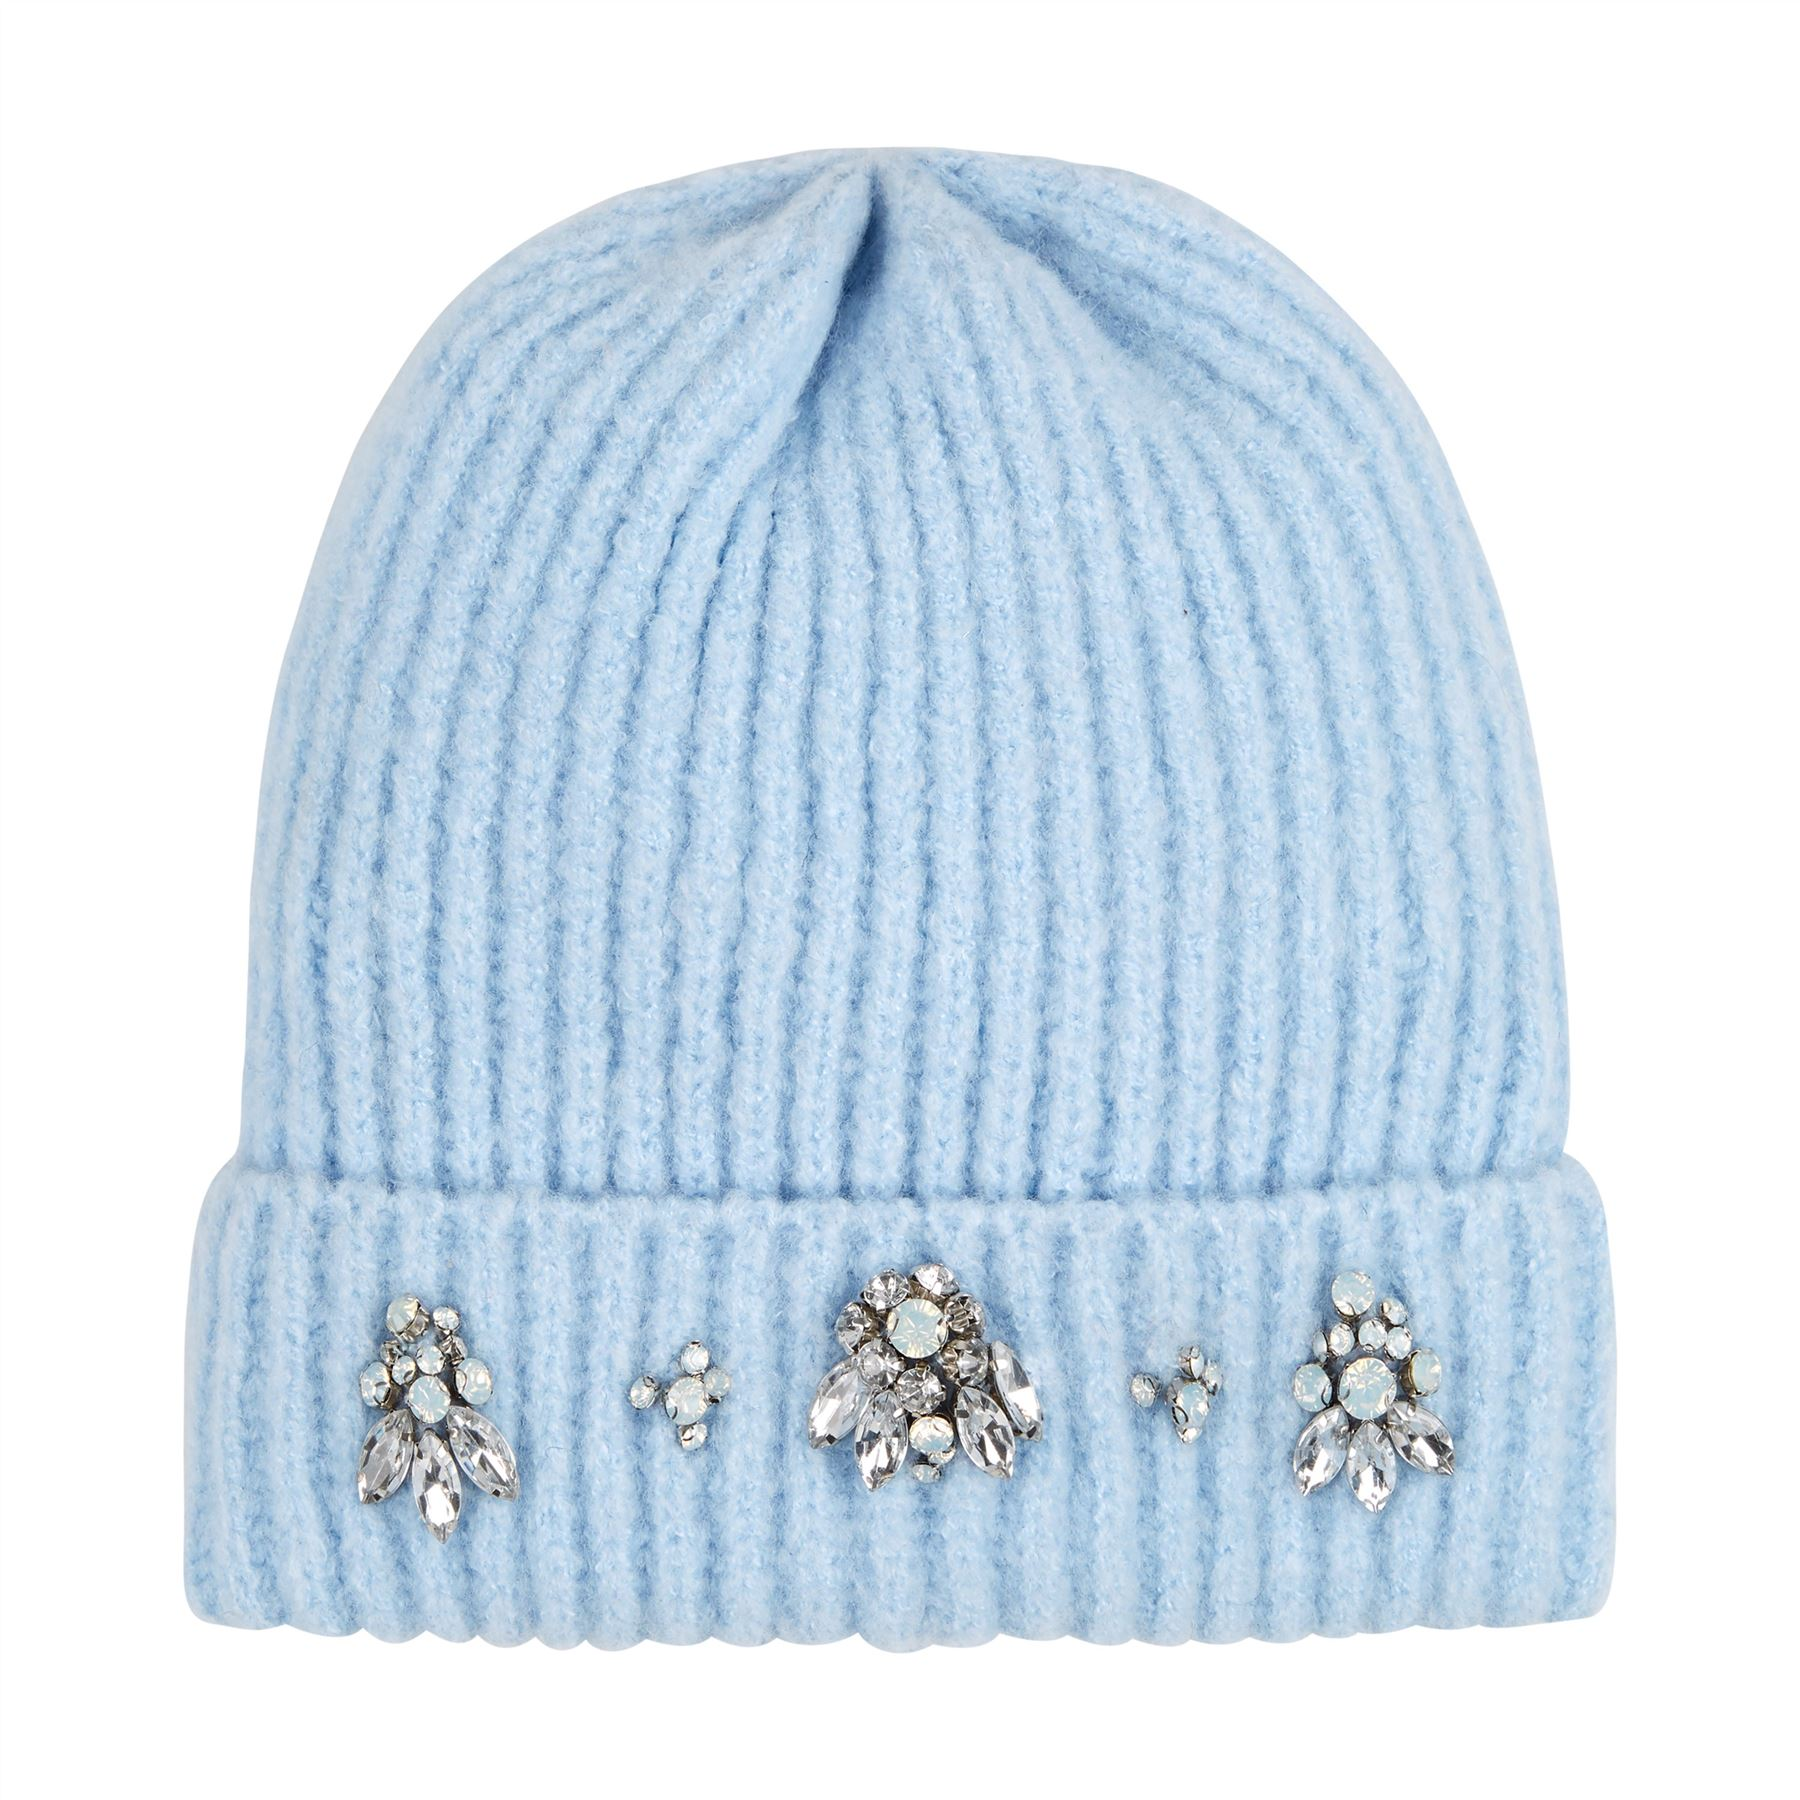 Image of Embellished Chunky Knit Beanie - Baby Blue - One Size